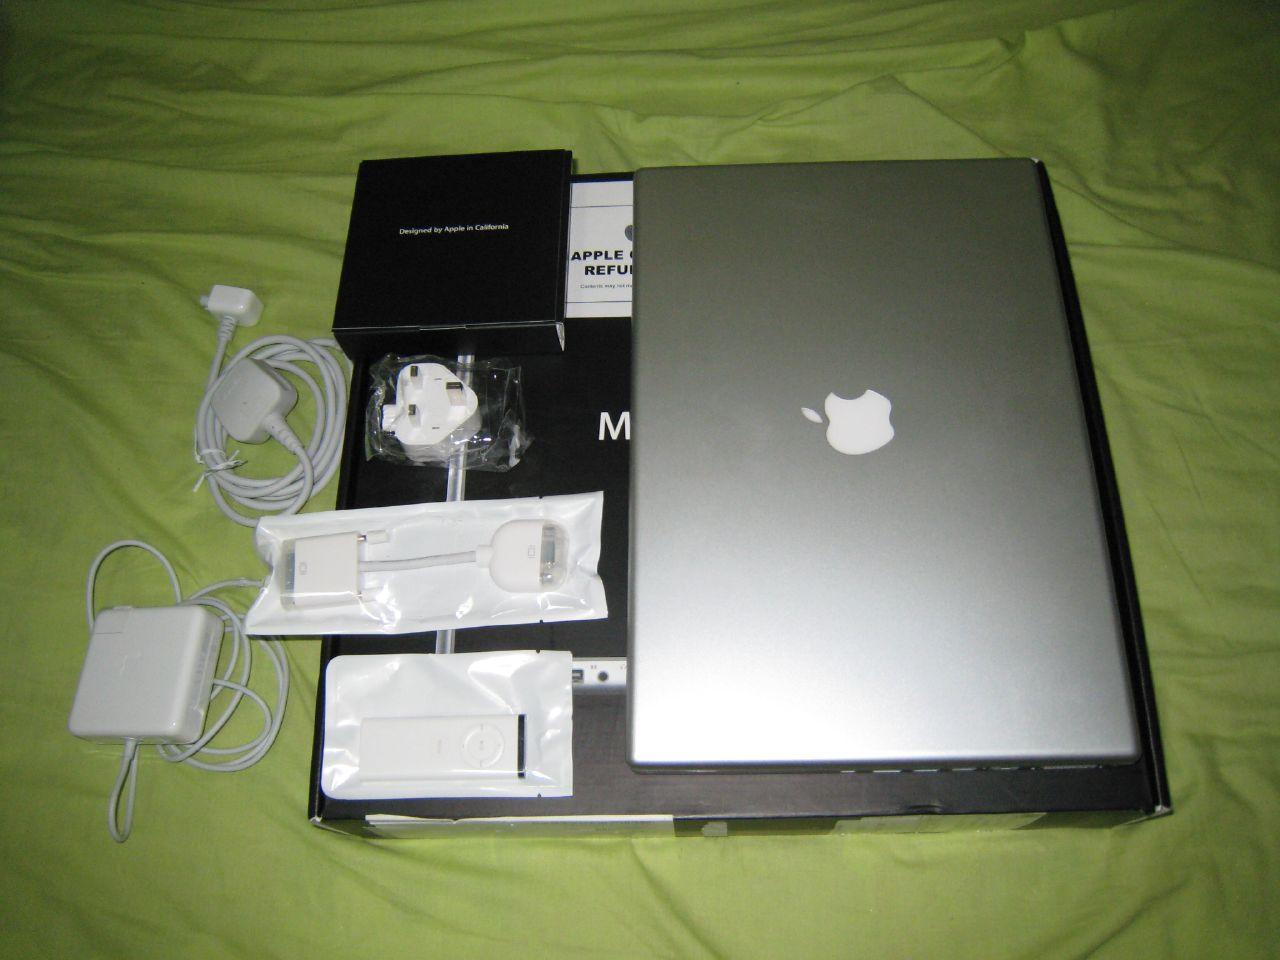 macbook pro things that in the box